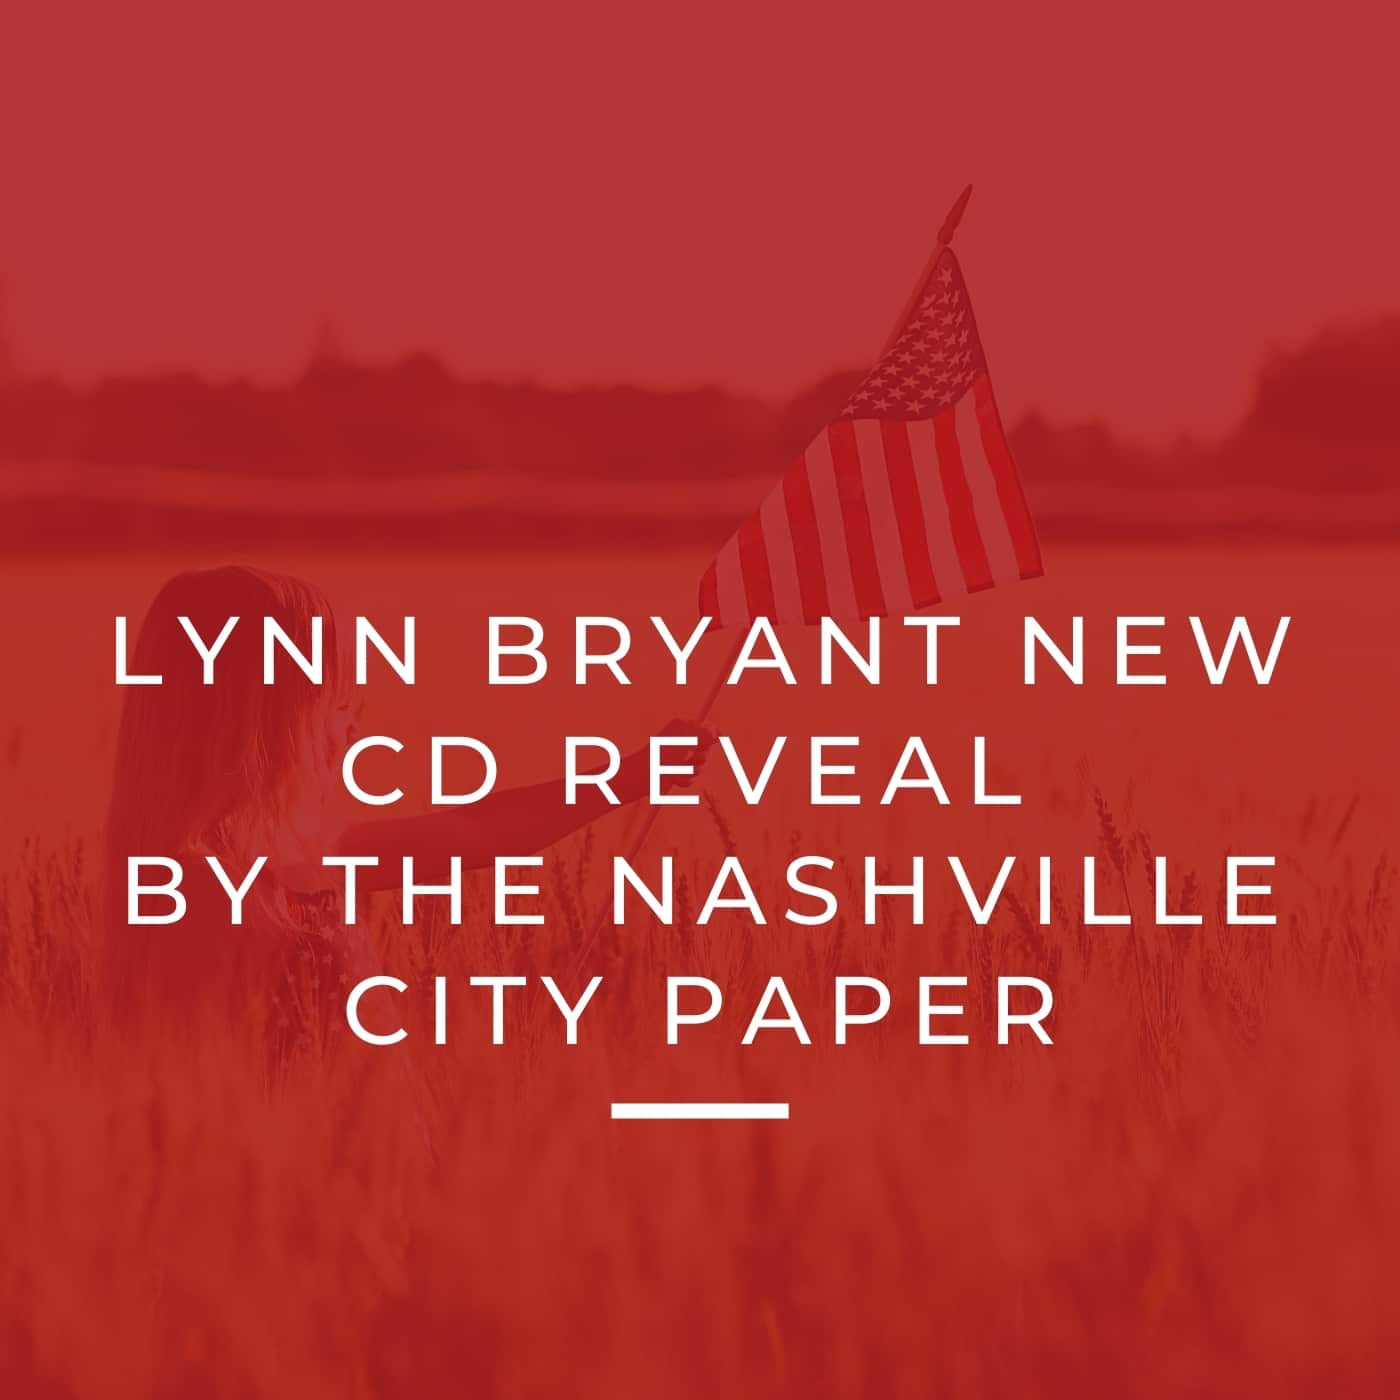 LYNN BRYANT NEW CD REVIEW BY THE NASVILLE CITY PAPER